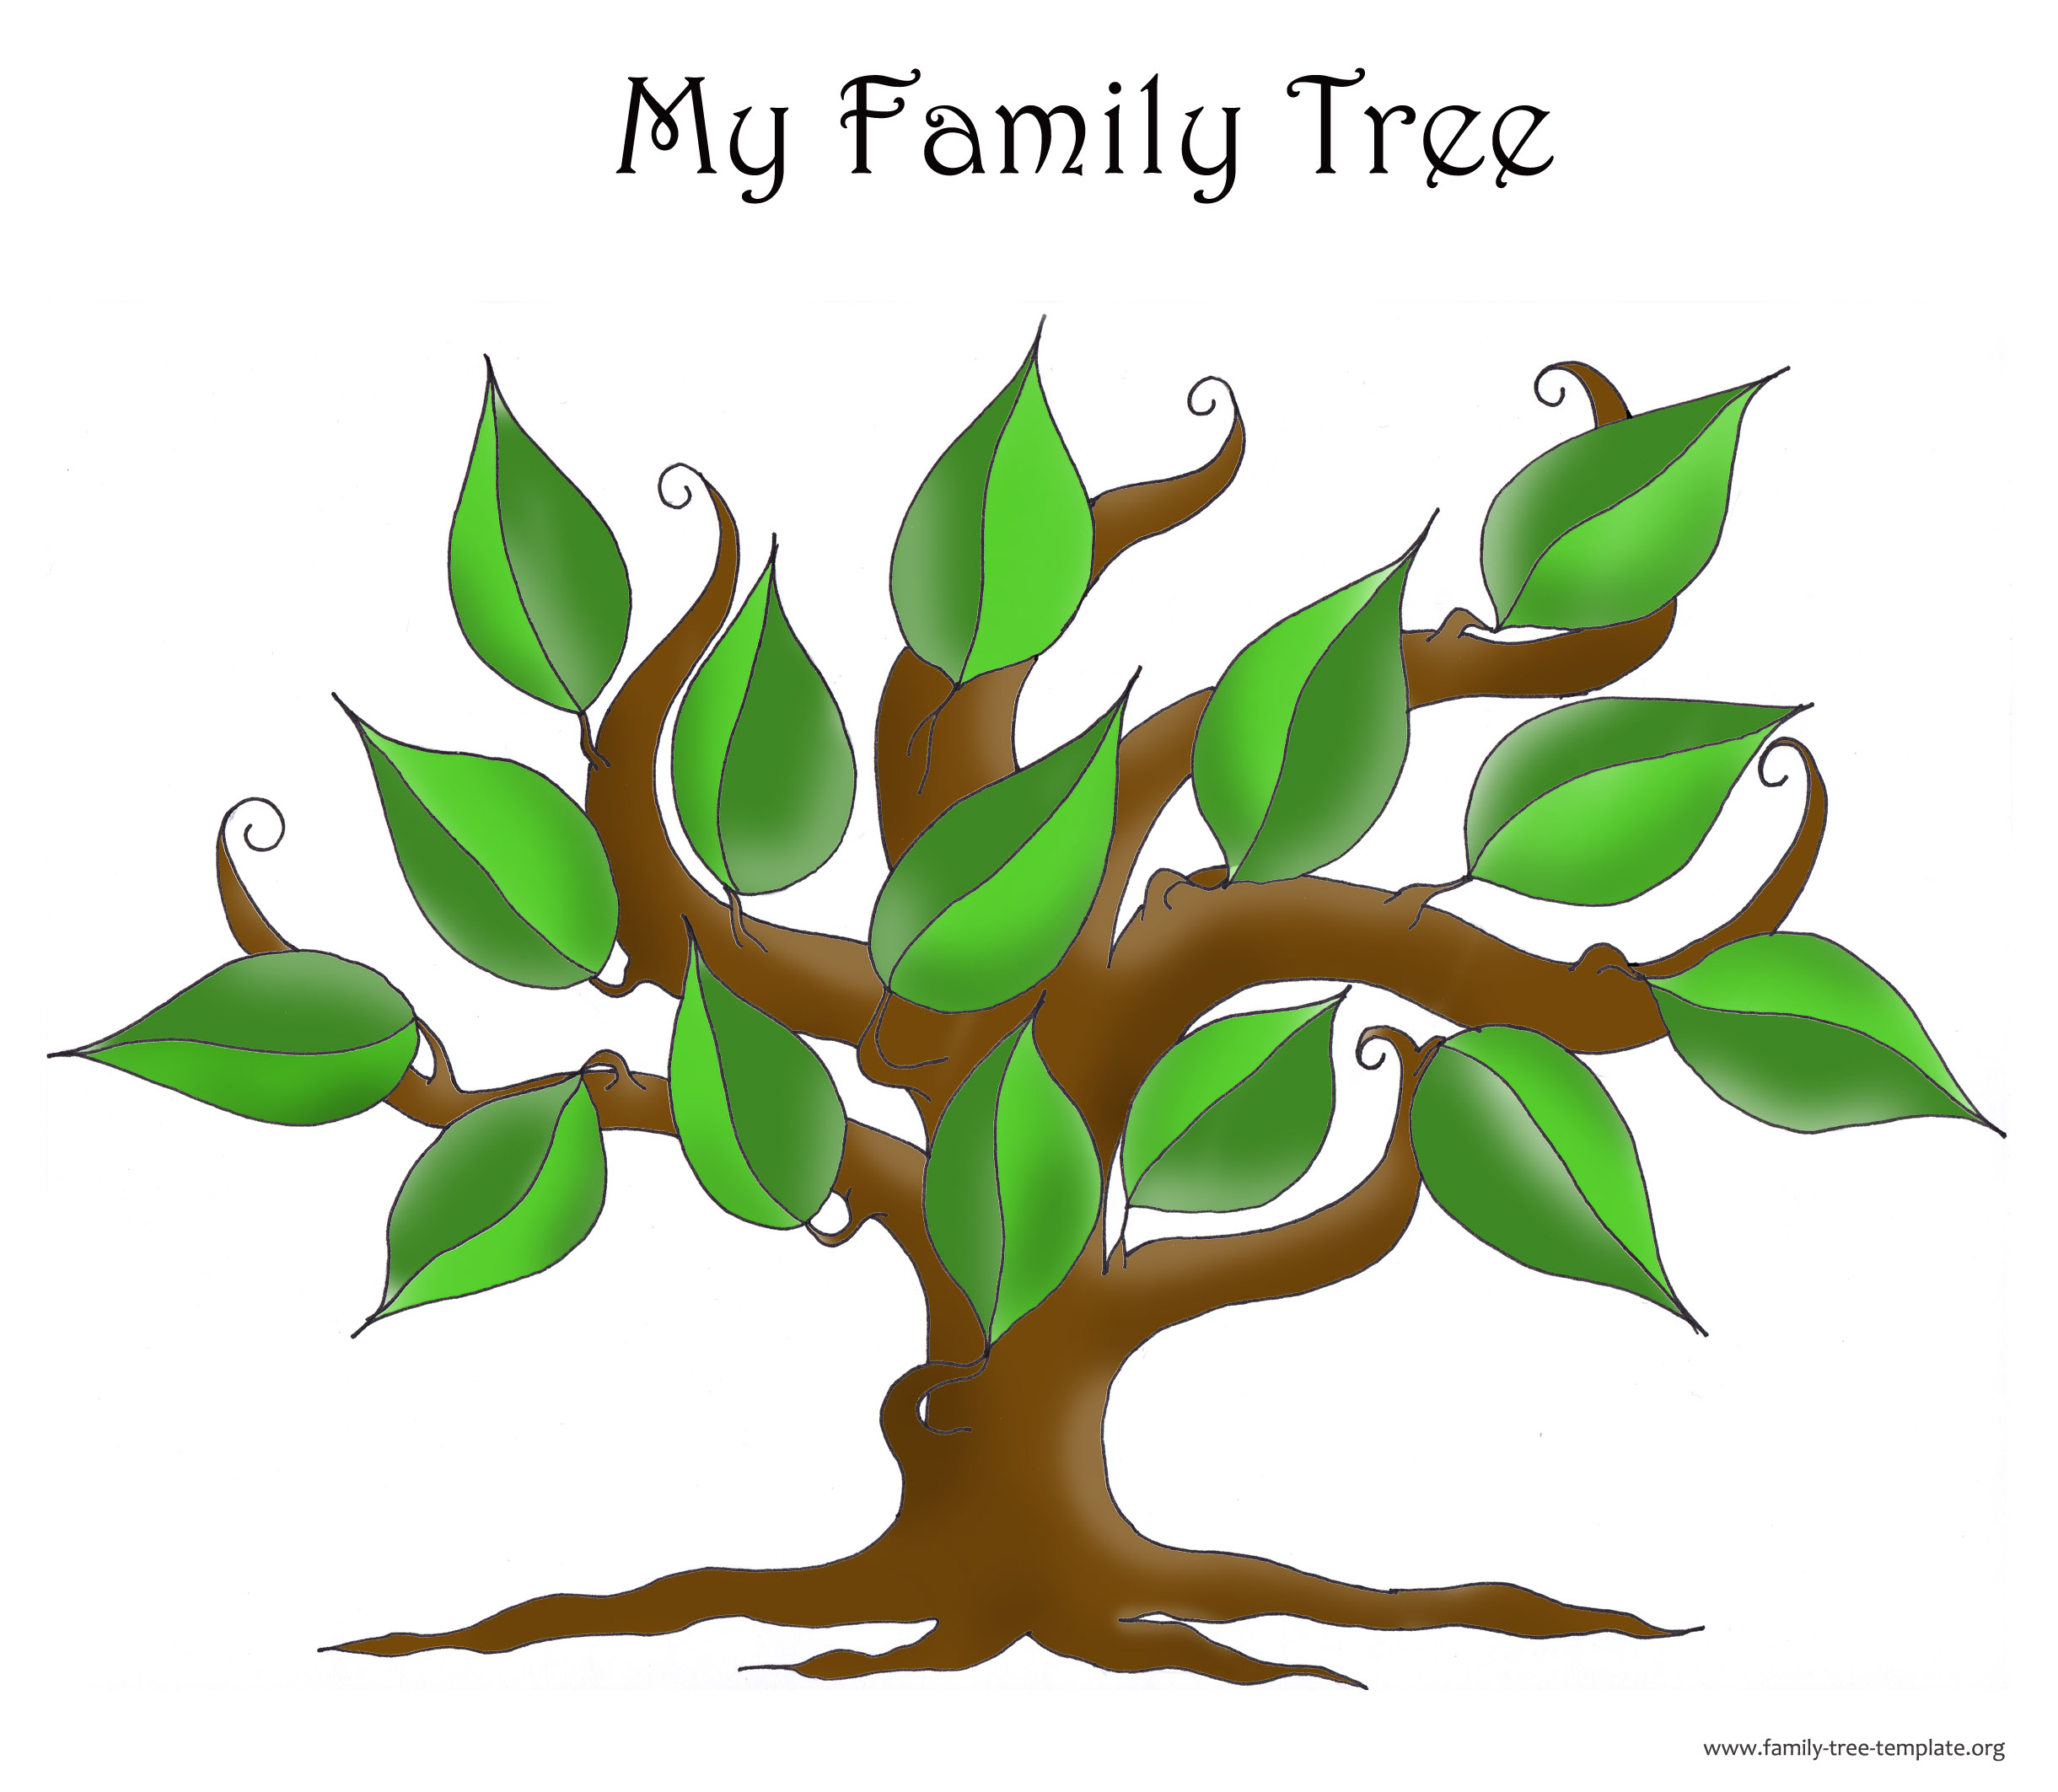 Genealogy tree with leaves so that you can plot in family members where you want to